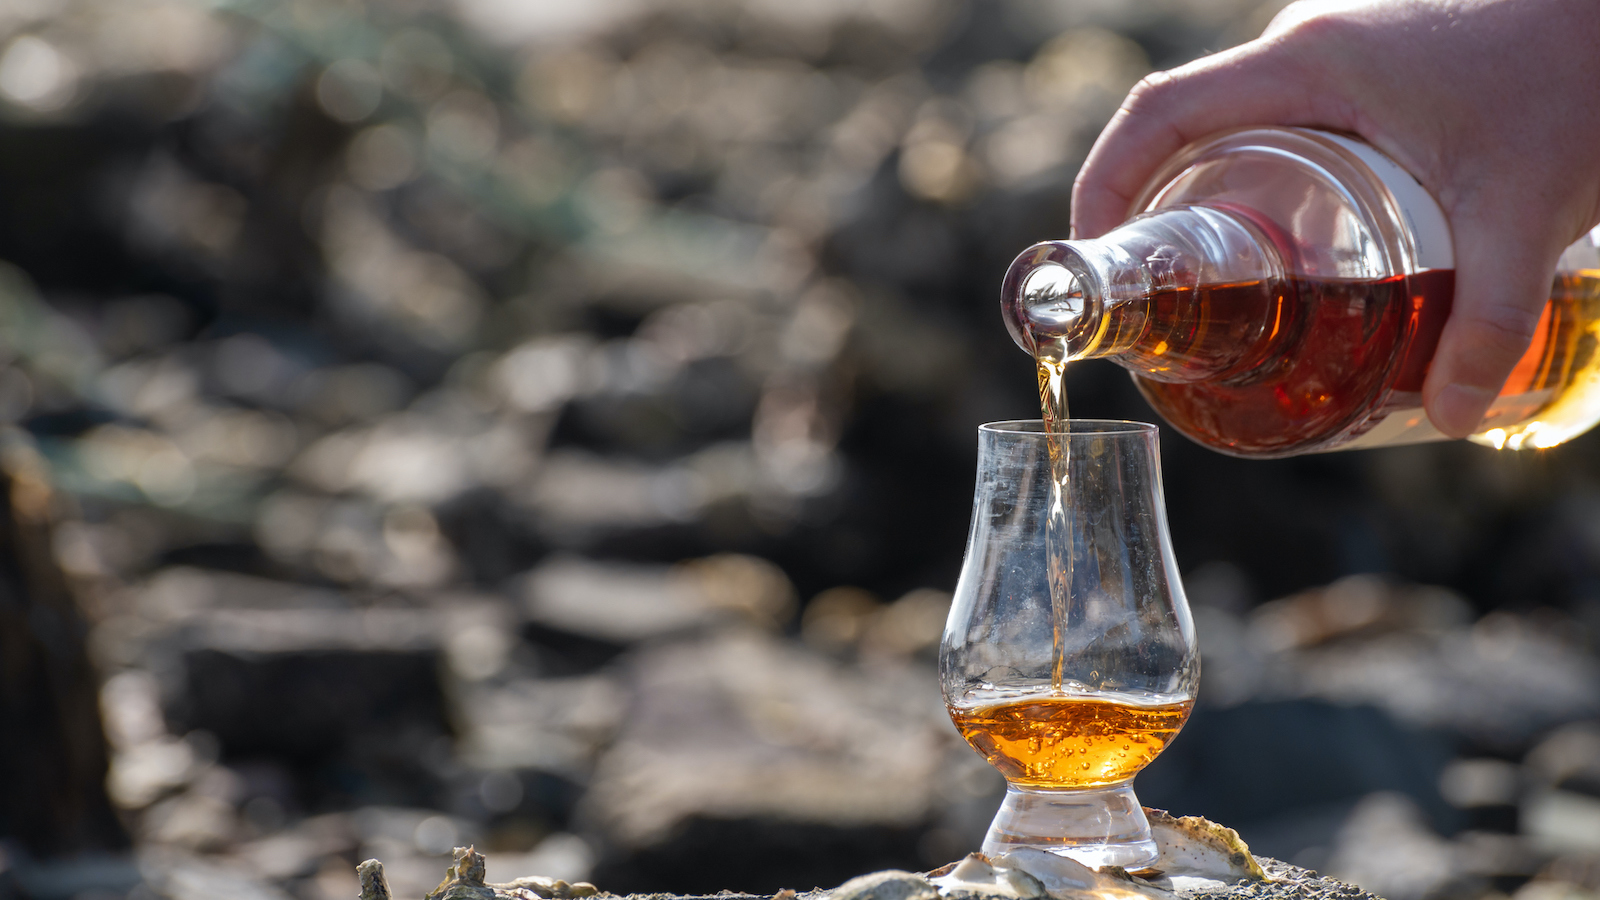 Laphroaig 10 Year Old Sherry Cask, Mizunara-Finished Rabbit Hole & More [New Releases]